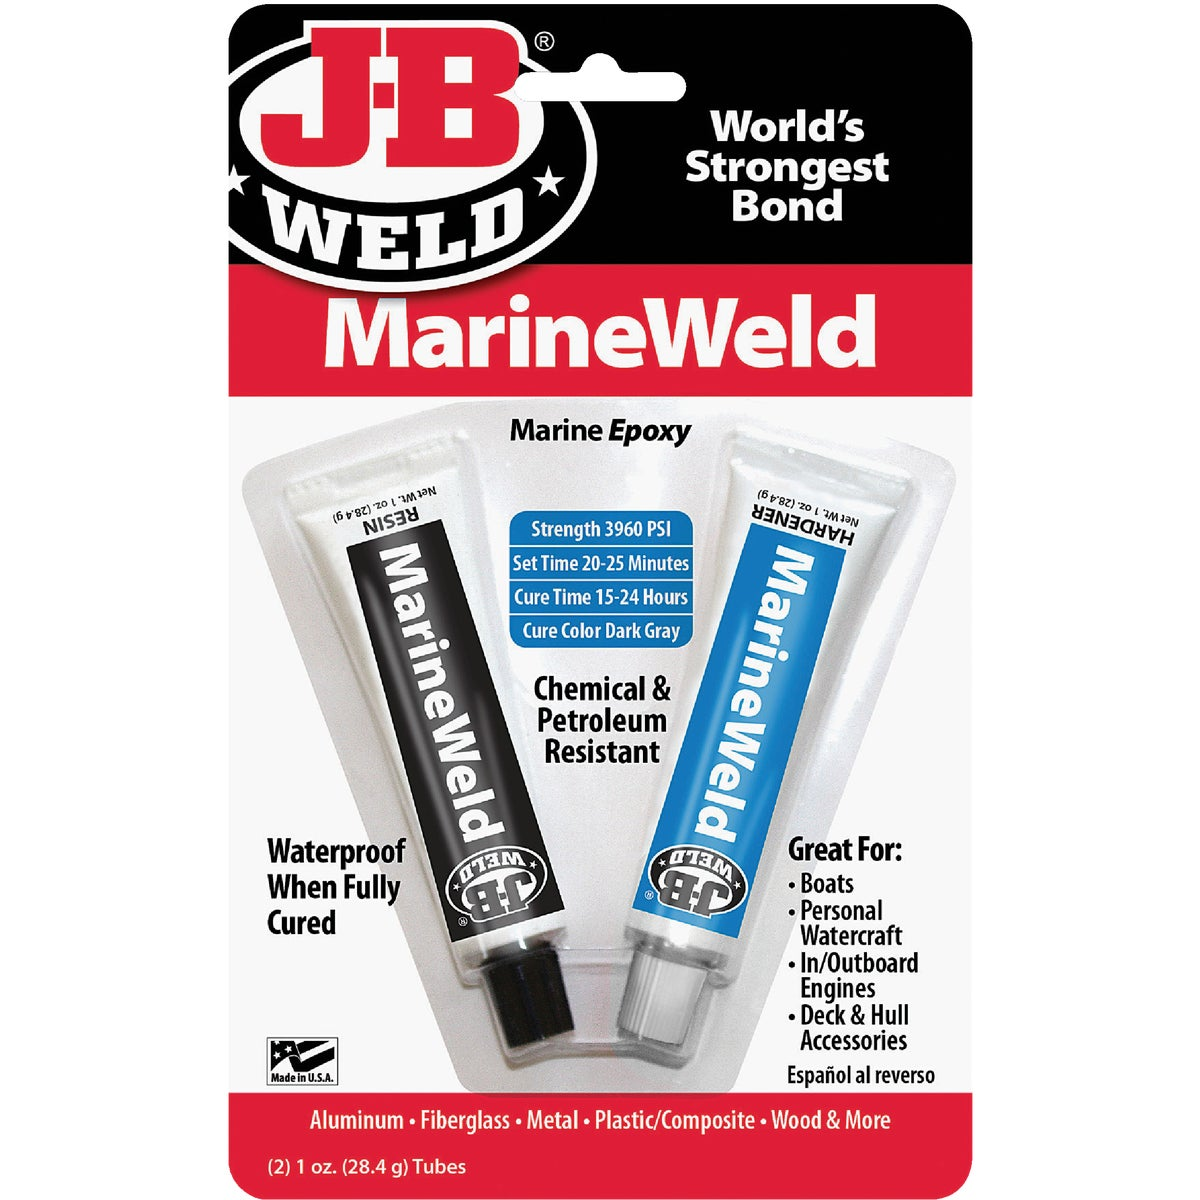 1OZ MARINEWELD EPOXY - 8272 by J B Weld Co